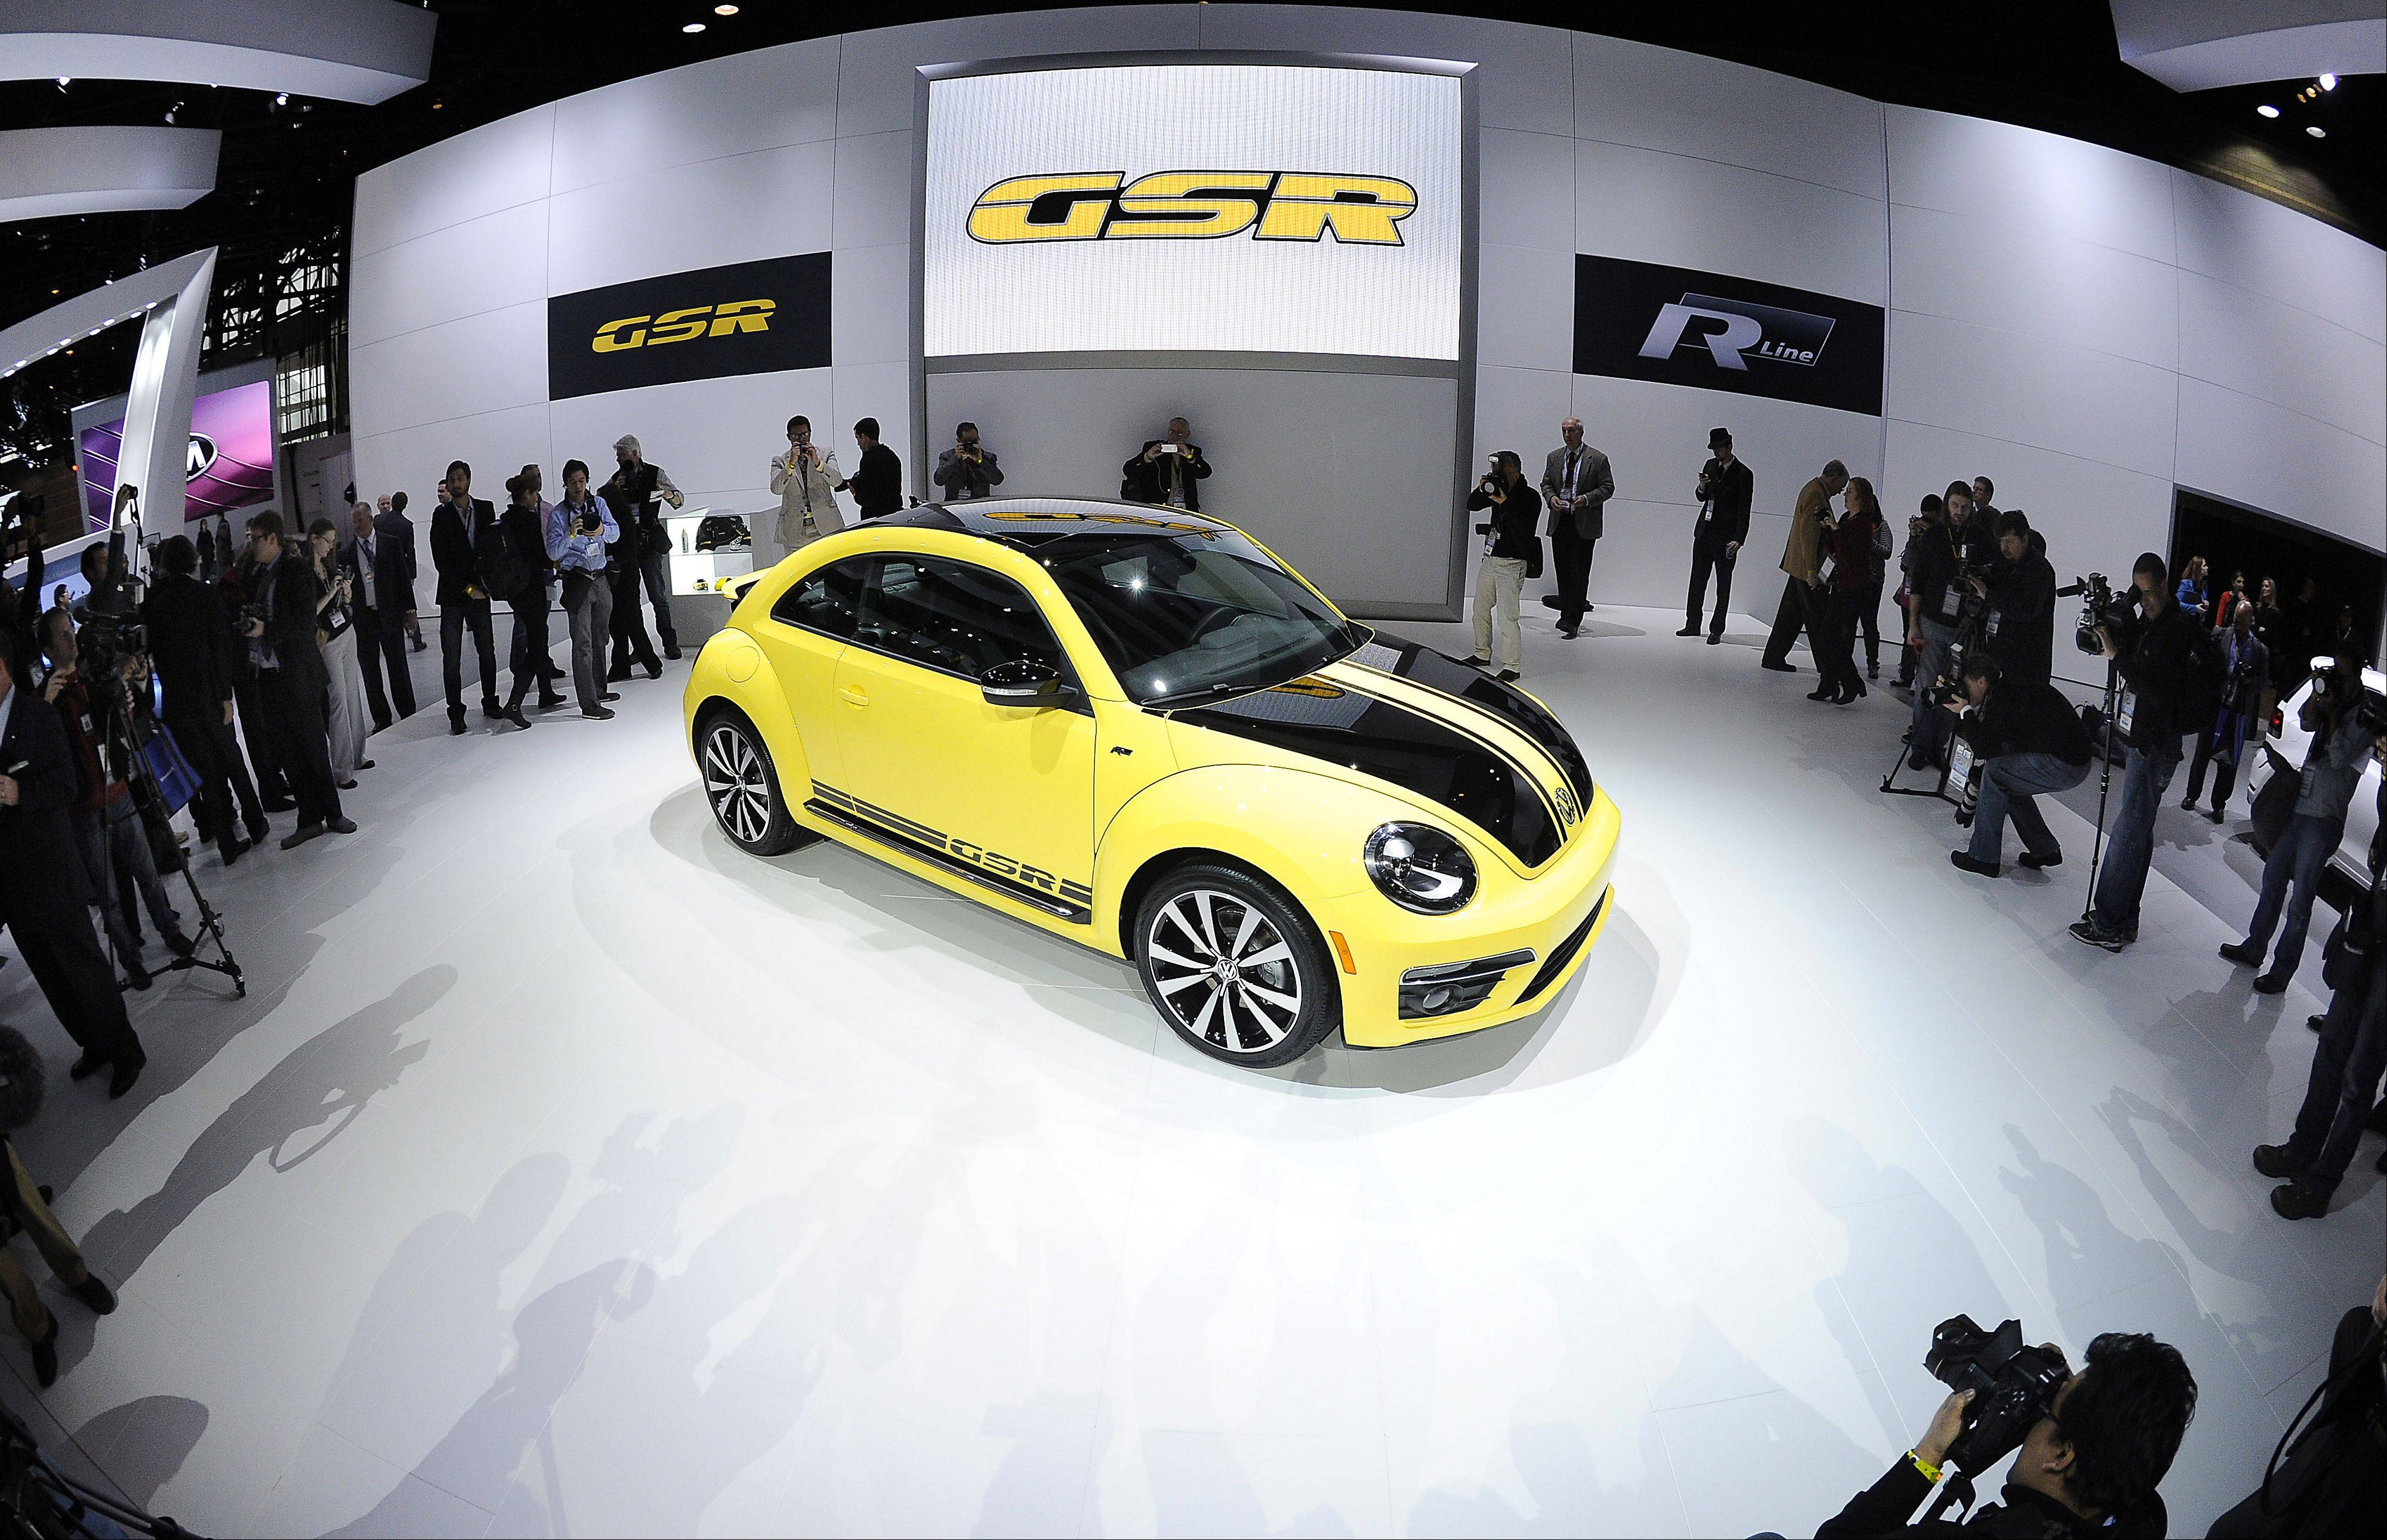 The 2014 GSR yellow and black Volkswagen is unveiled.